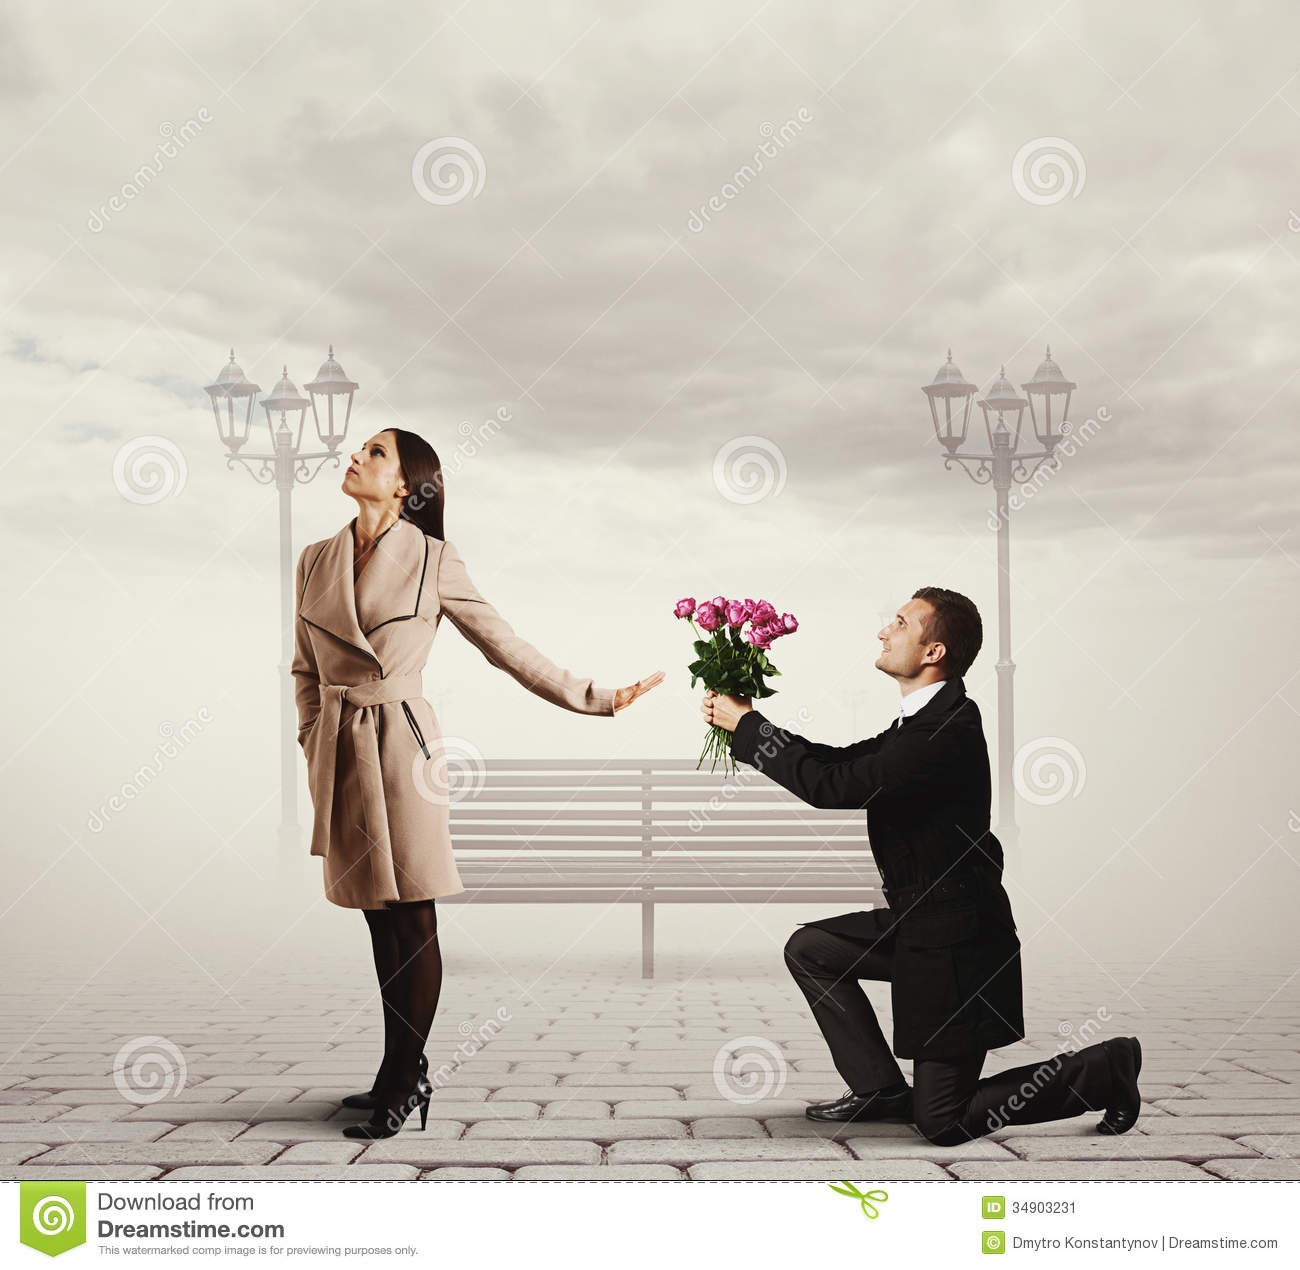 Woman Rejecting Man With Flowers Stock Image - Image: 34903231